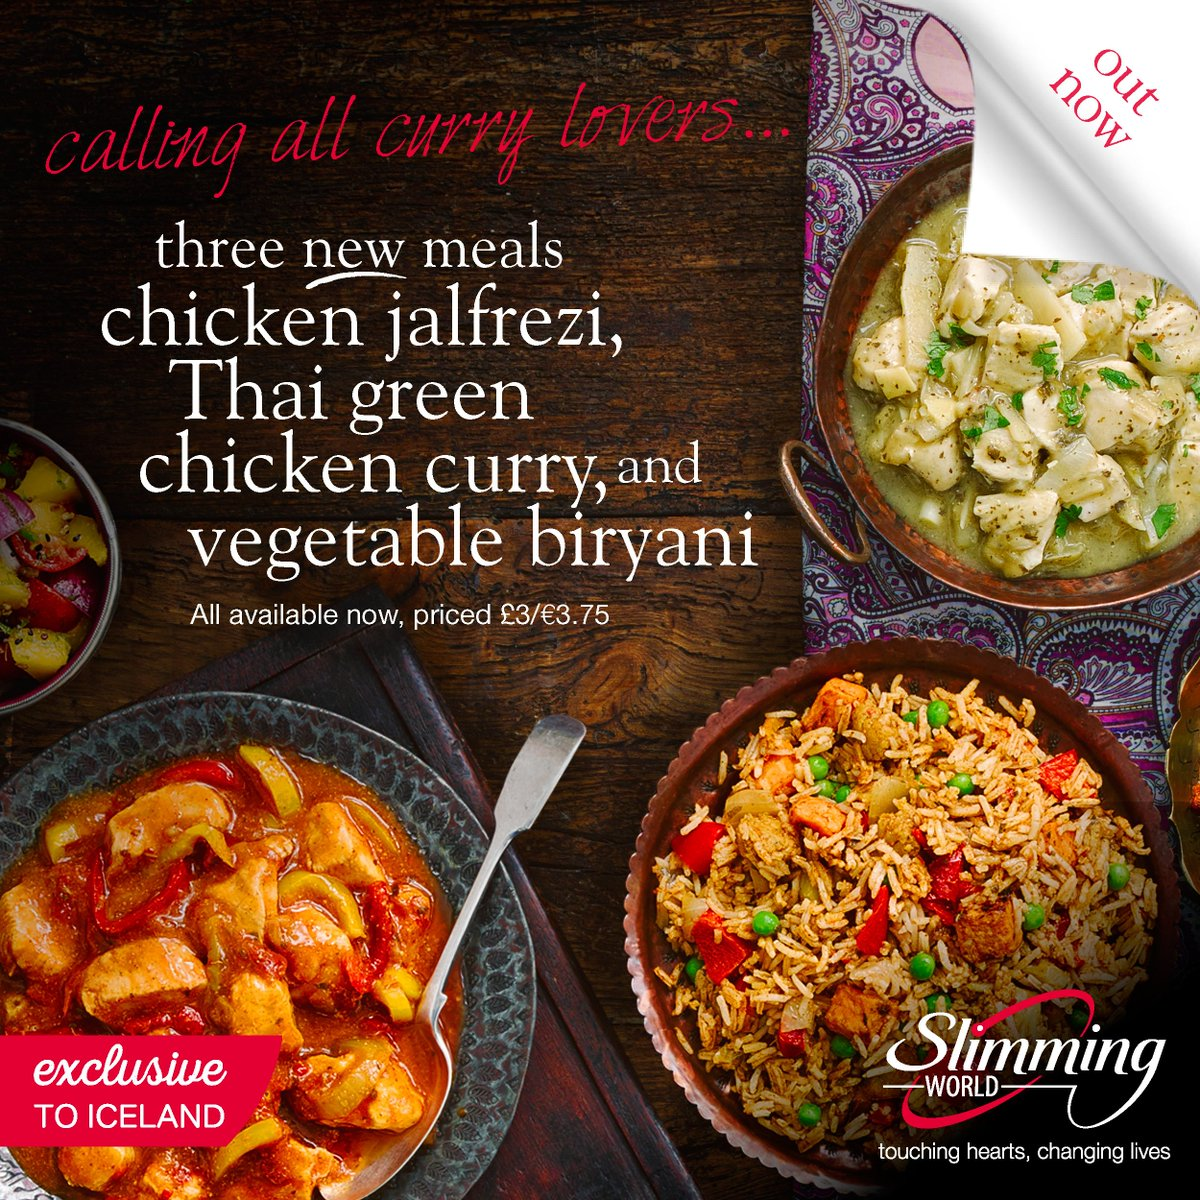 Slimming World On Twitter Fancy A Slimmingworld Curry In